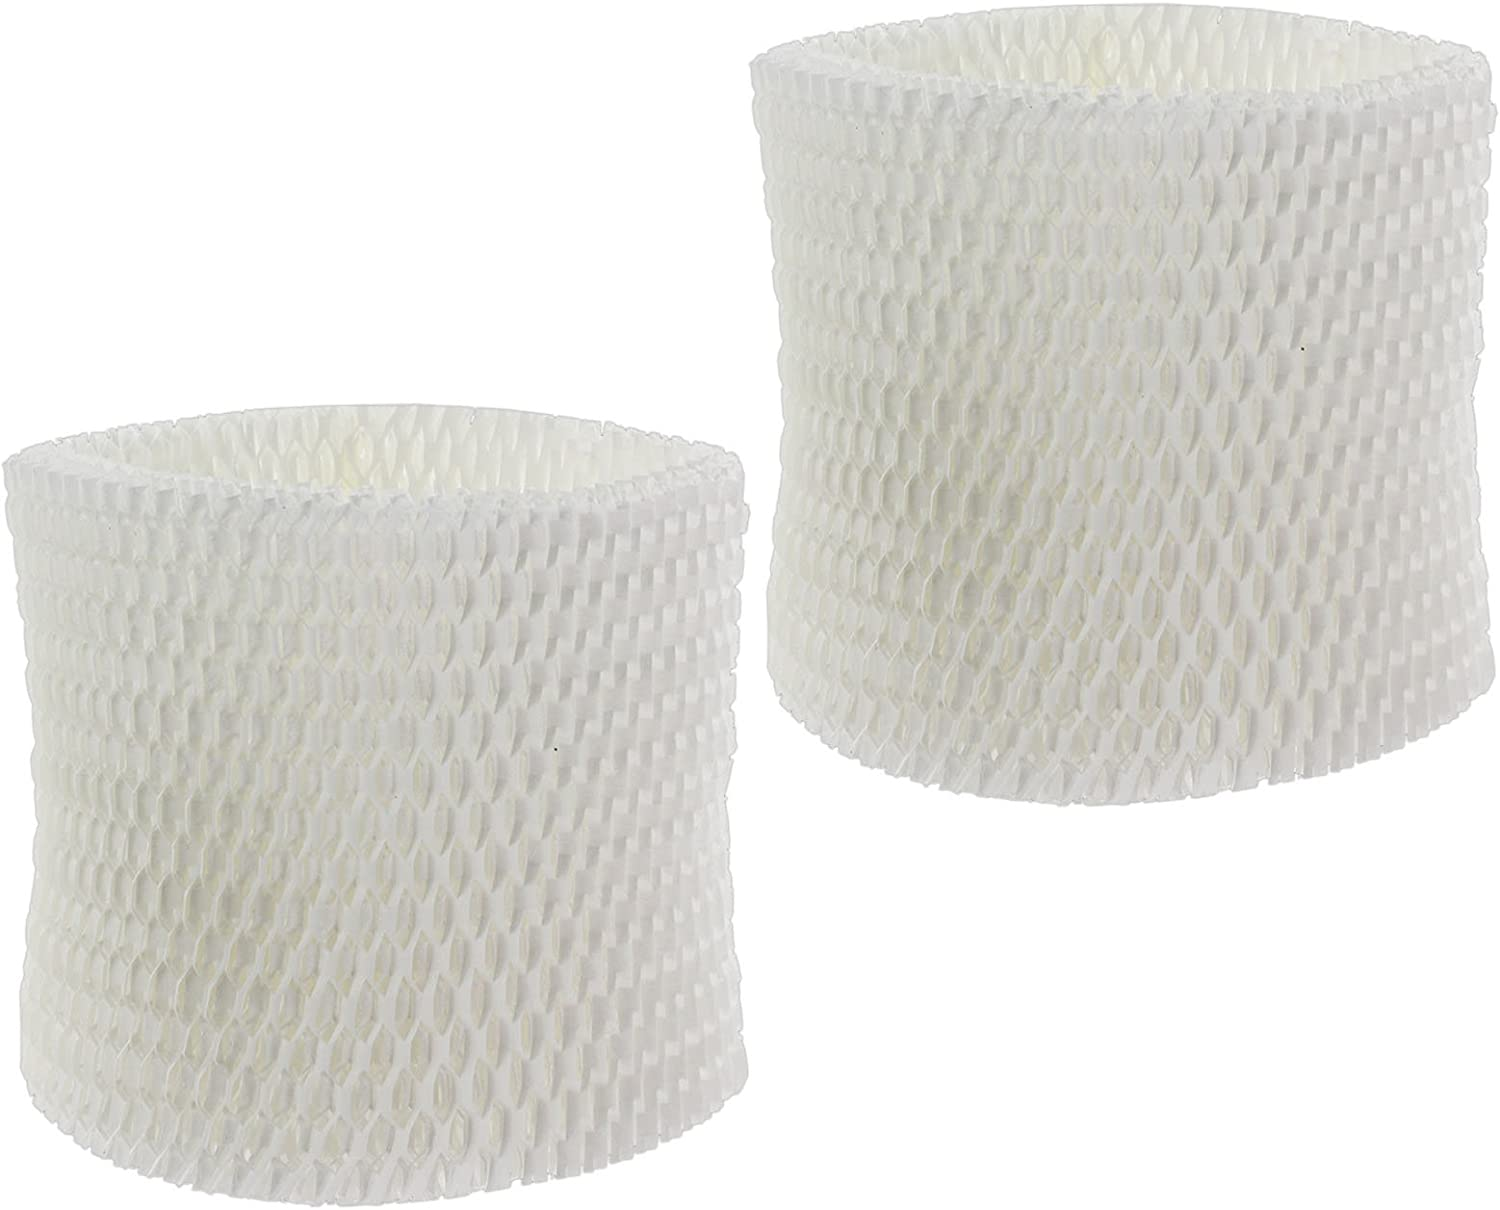 Spares2go WF2 Protec Type Filter for Honeywell Humidifier